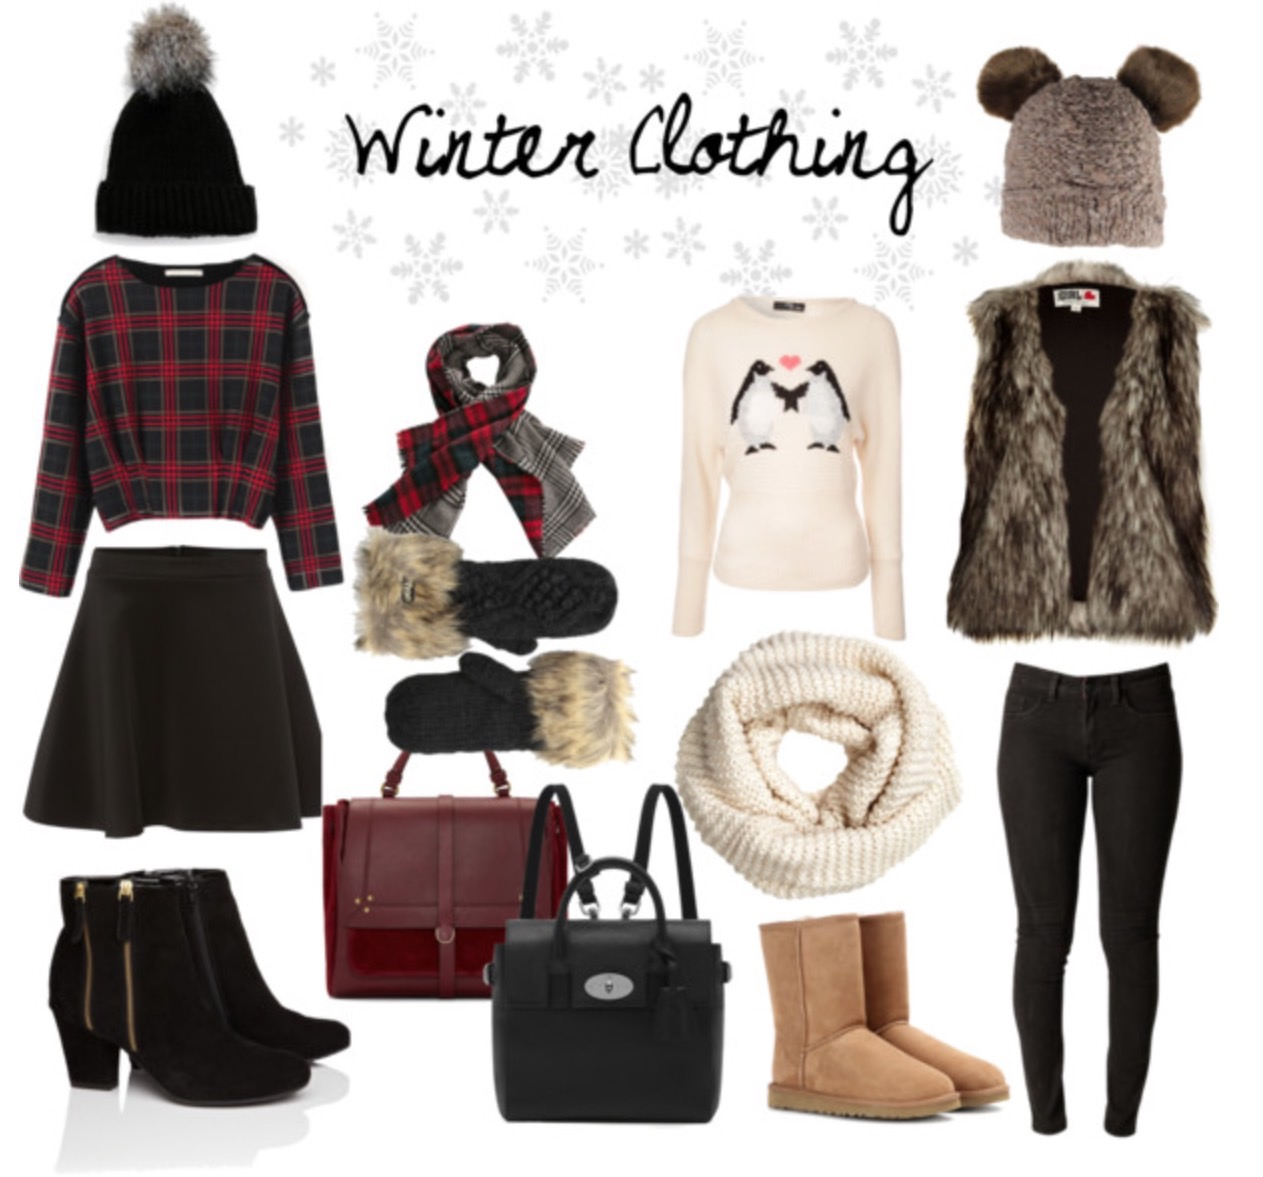 To acquire Wear to what to school during winter pictures trends